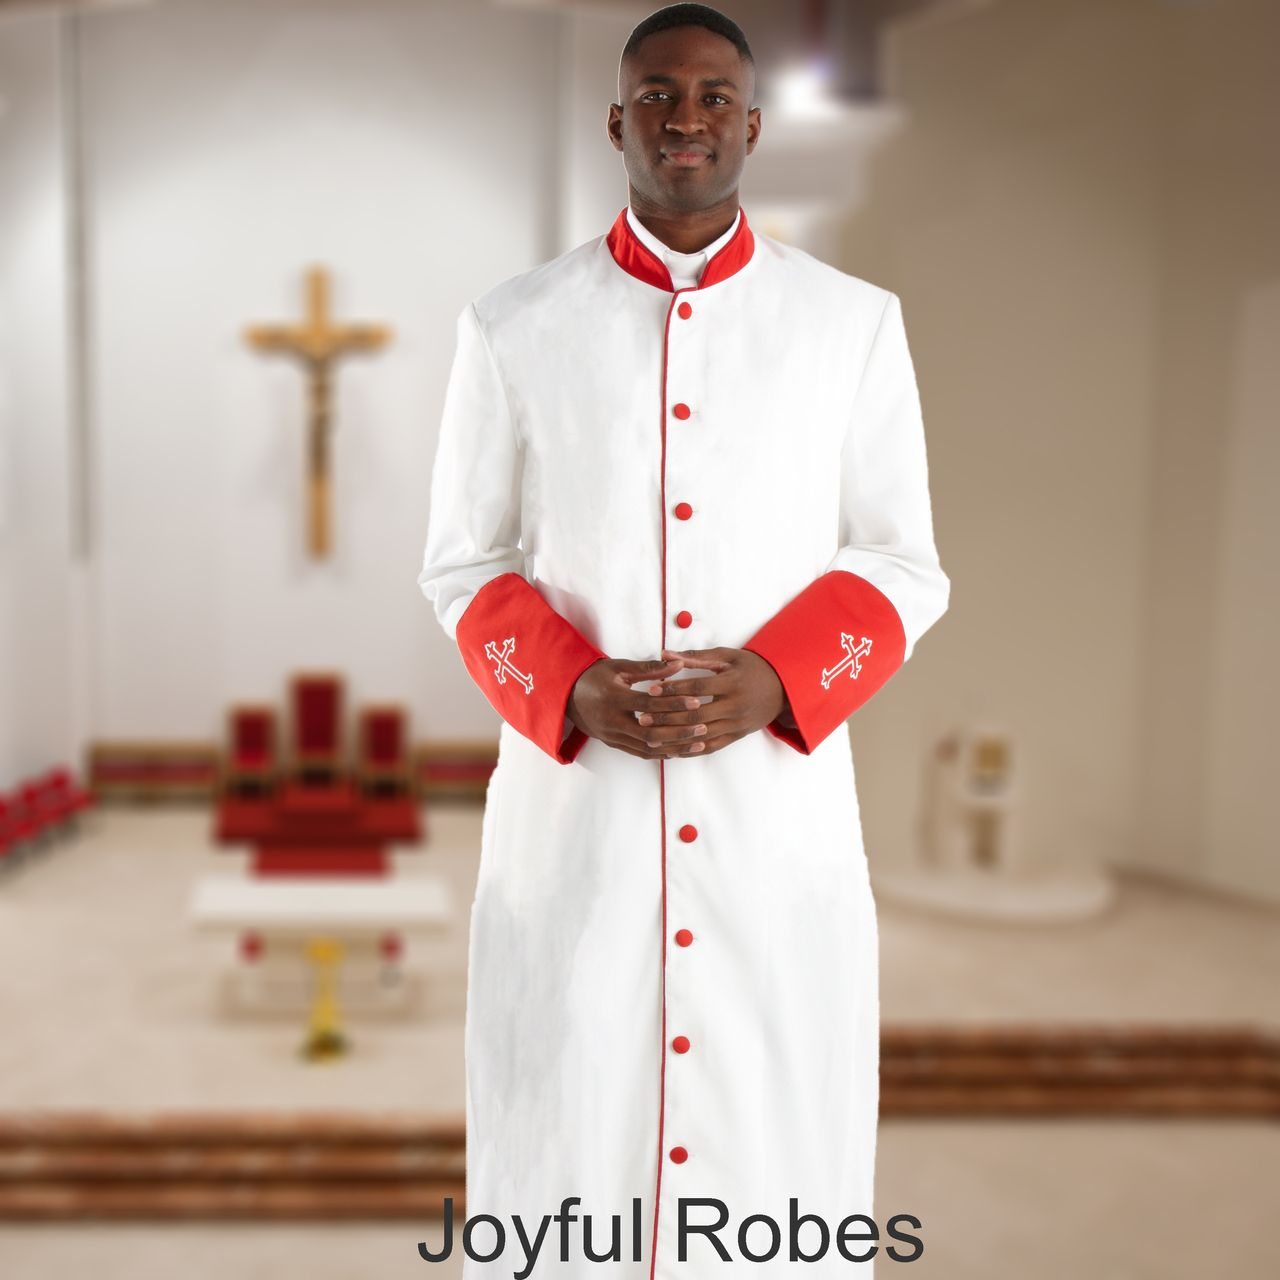 311 M. Men's Pastor/Clergy Robe - White/Red Cuff